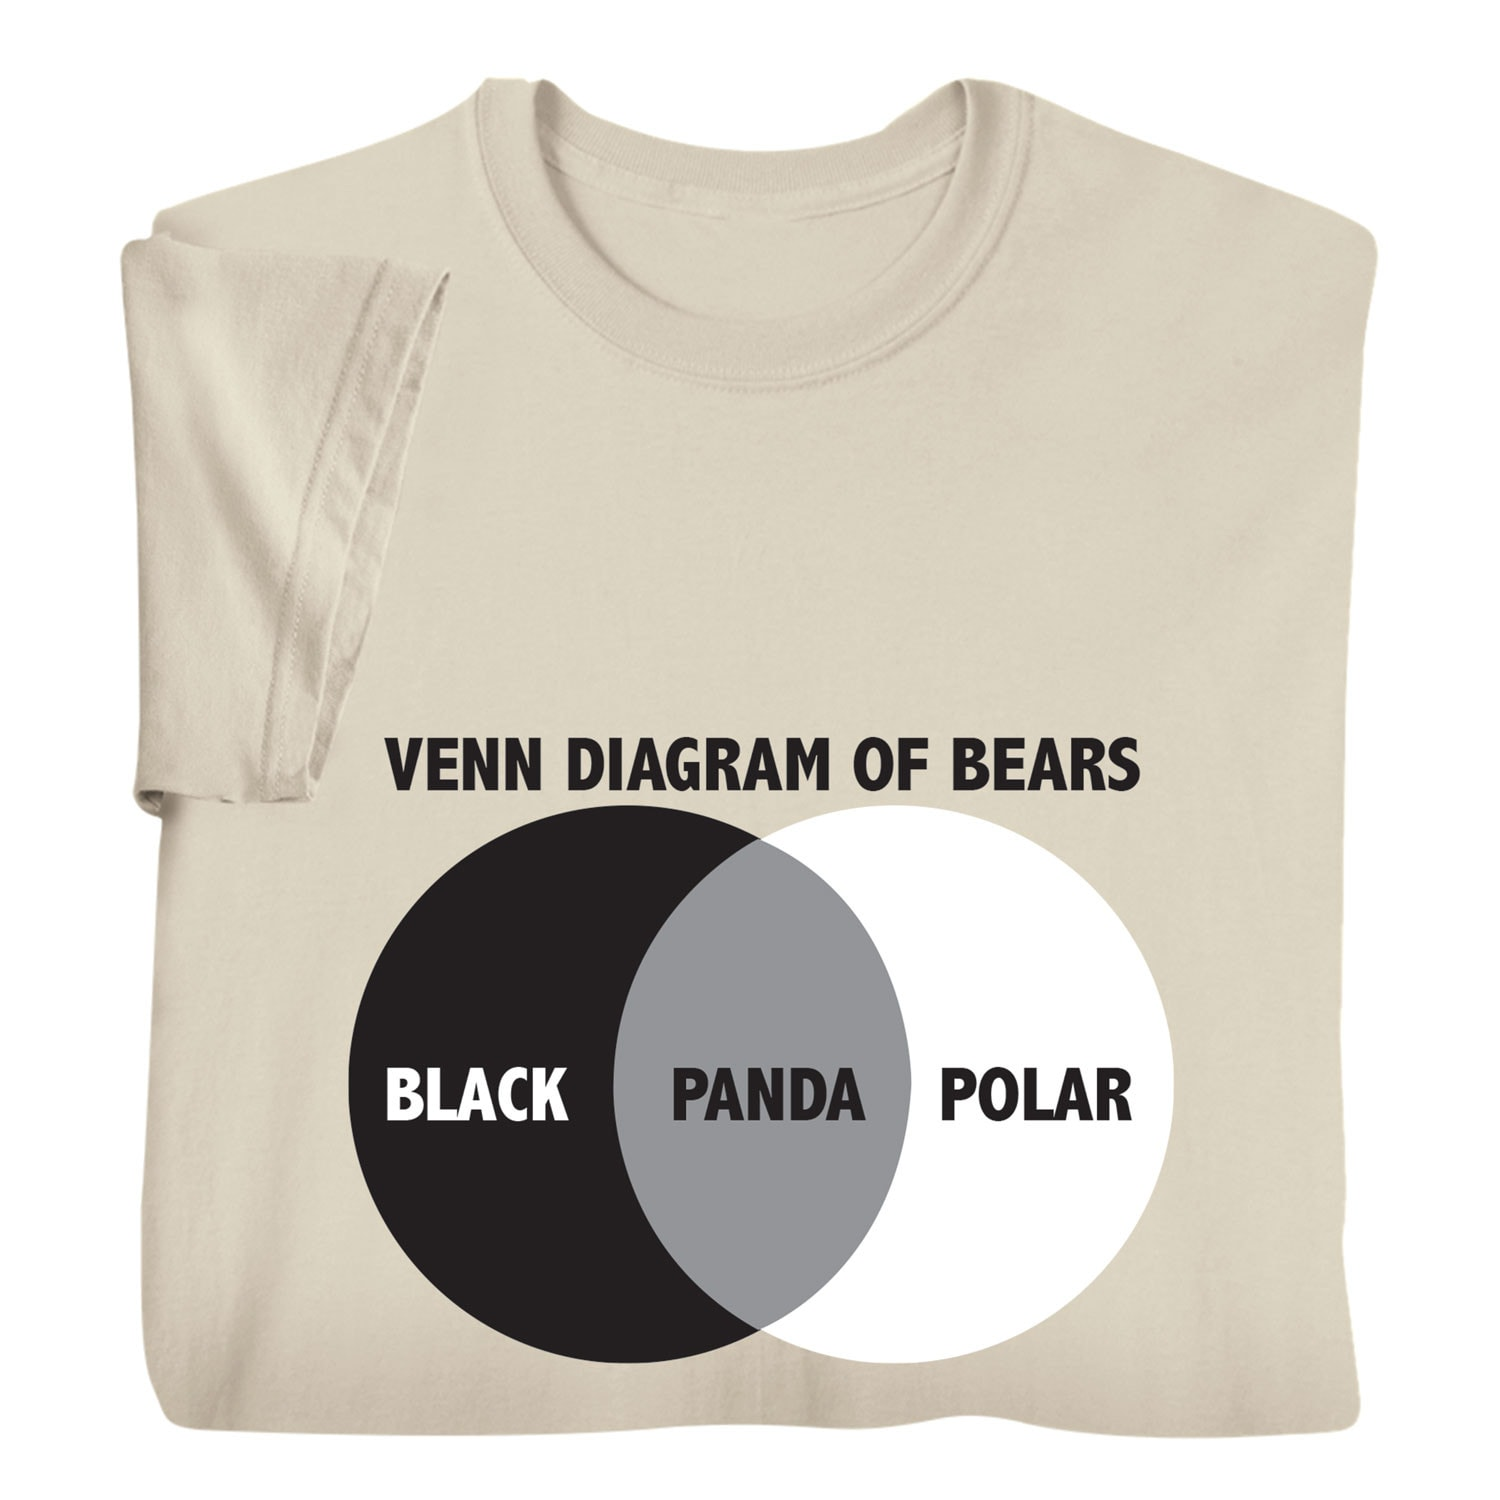 2958a1263 Details about What On Earth Men's A Venn Diagram of Bears Funny Beige Top,  Panda T-Shirt